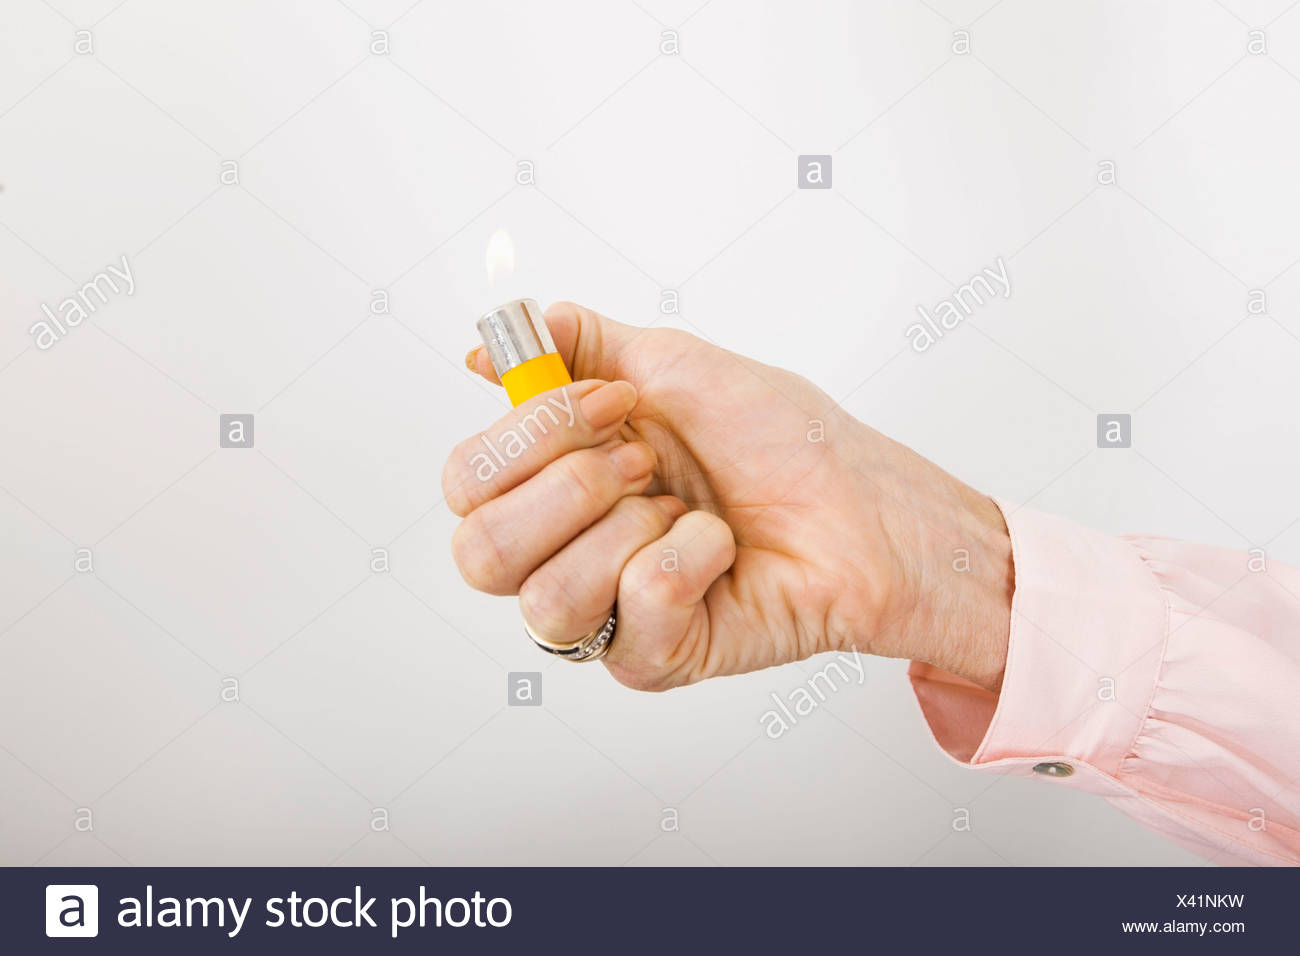 Businesswoman's hand holding cigarette lighter with flame in office - Stock Image